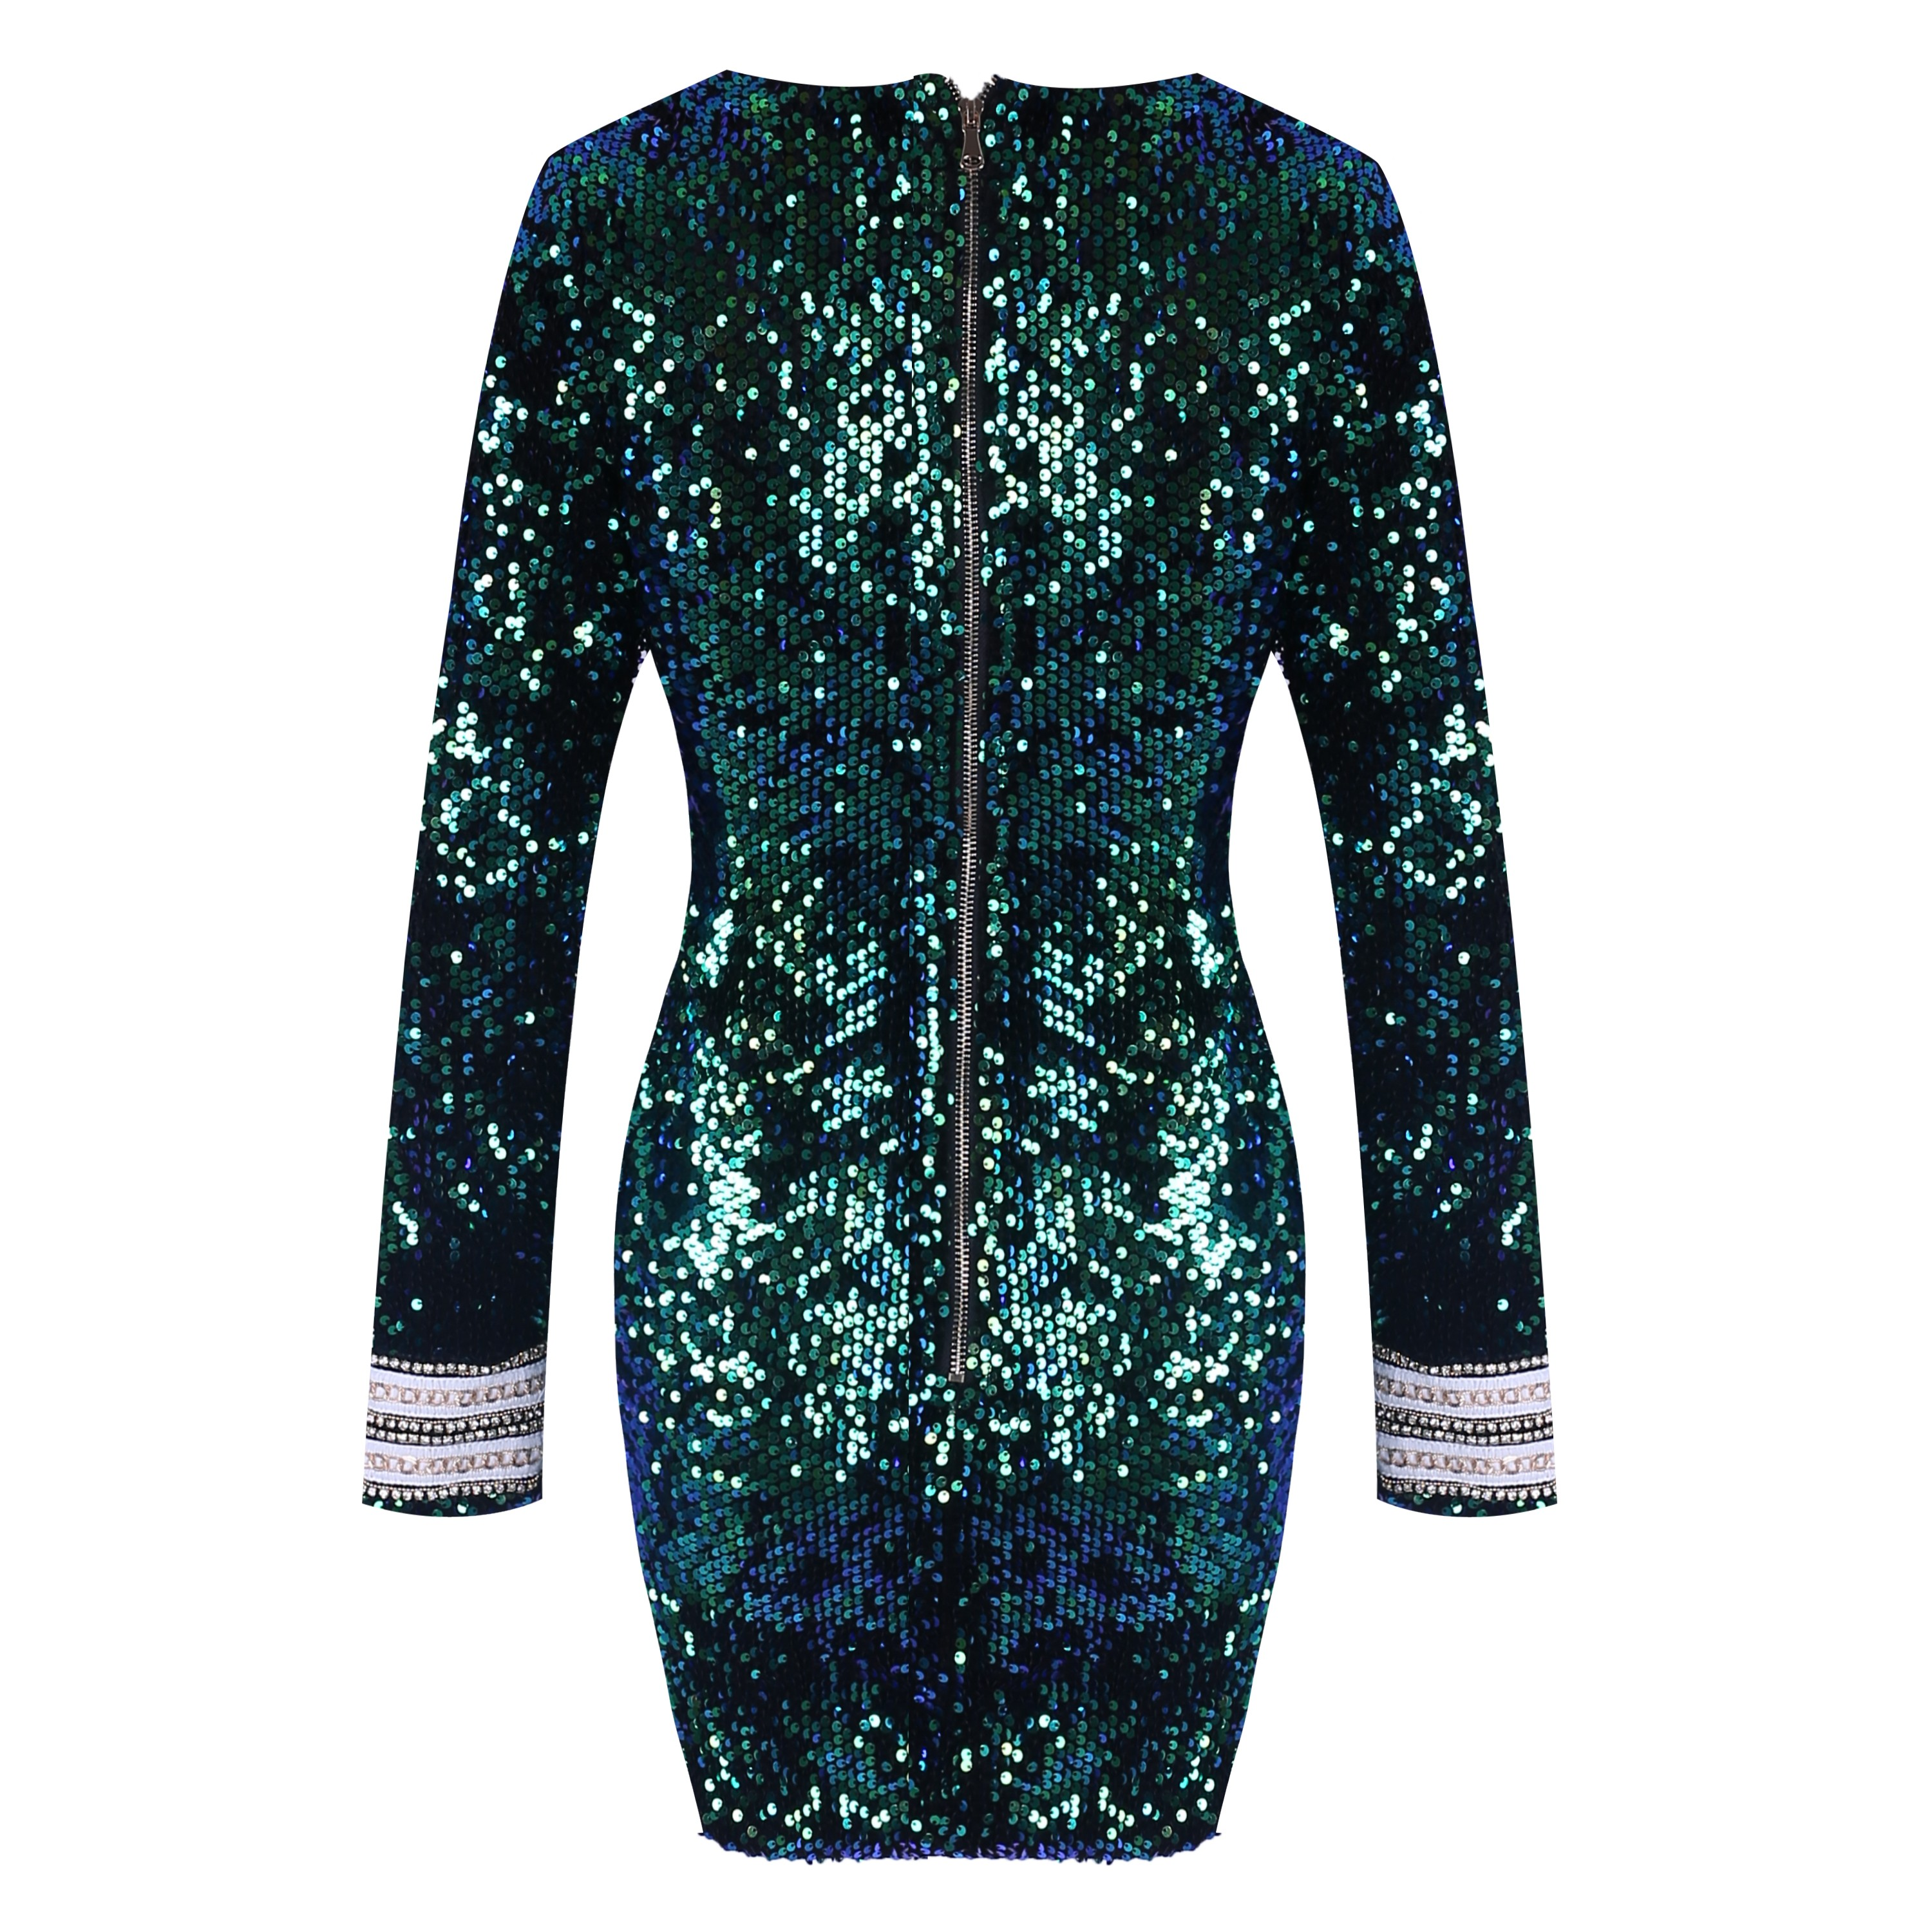 Green V Neck Long Sleeve Mini Sequined Metal Embellished Newest Bodycon Dress HW240-Green